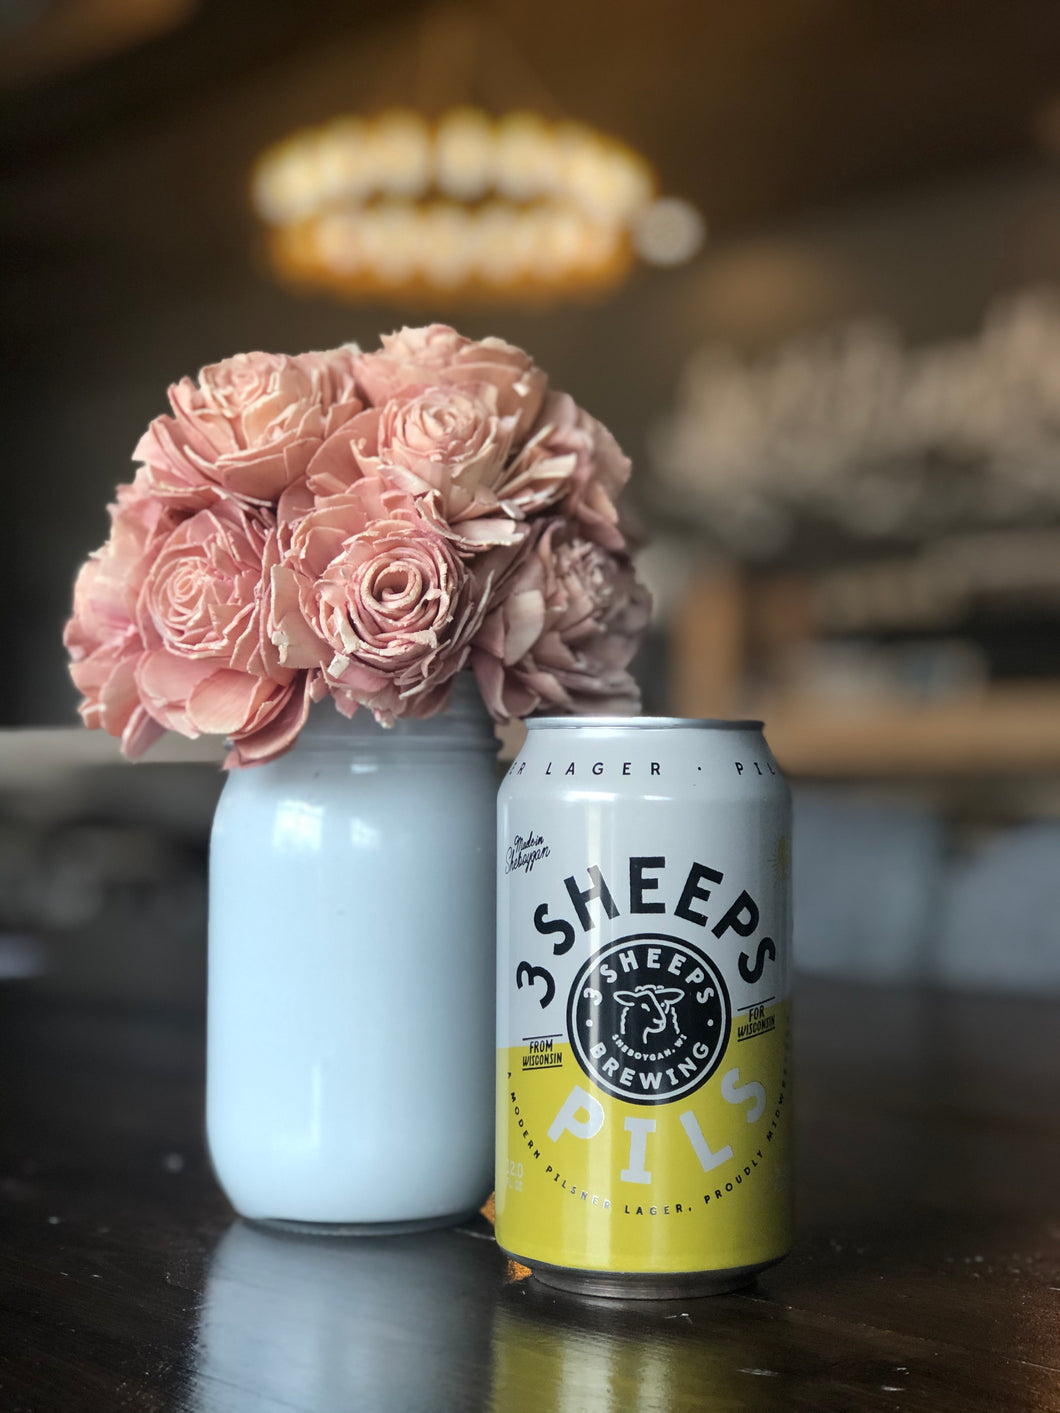 3 Sheeps Pils (12oz can)